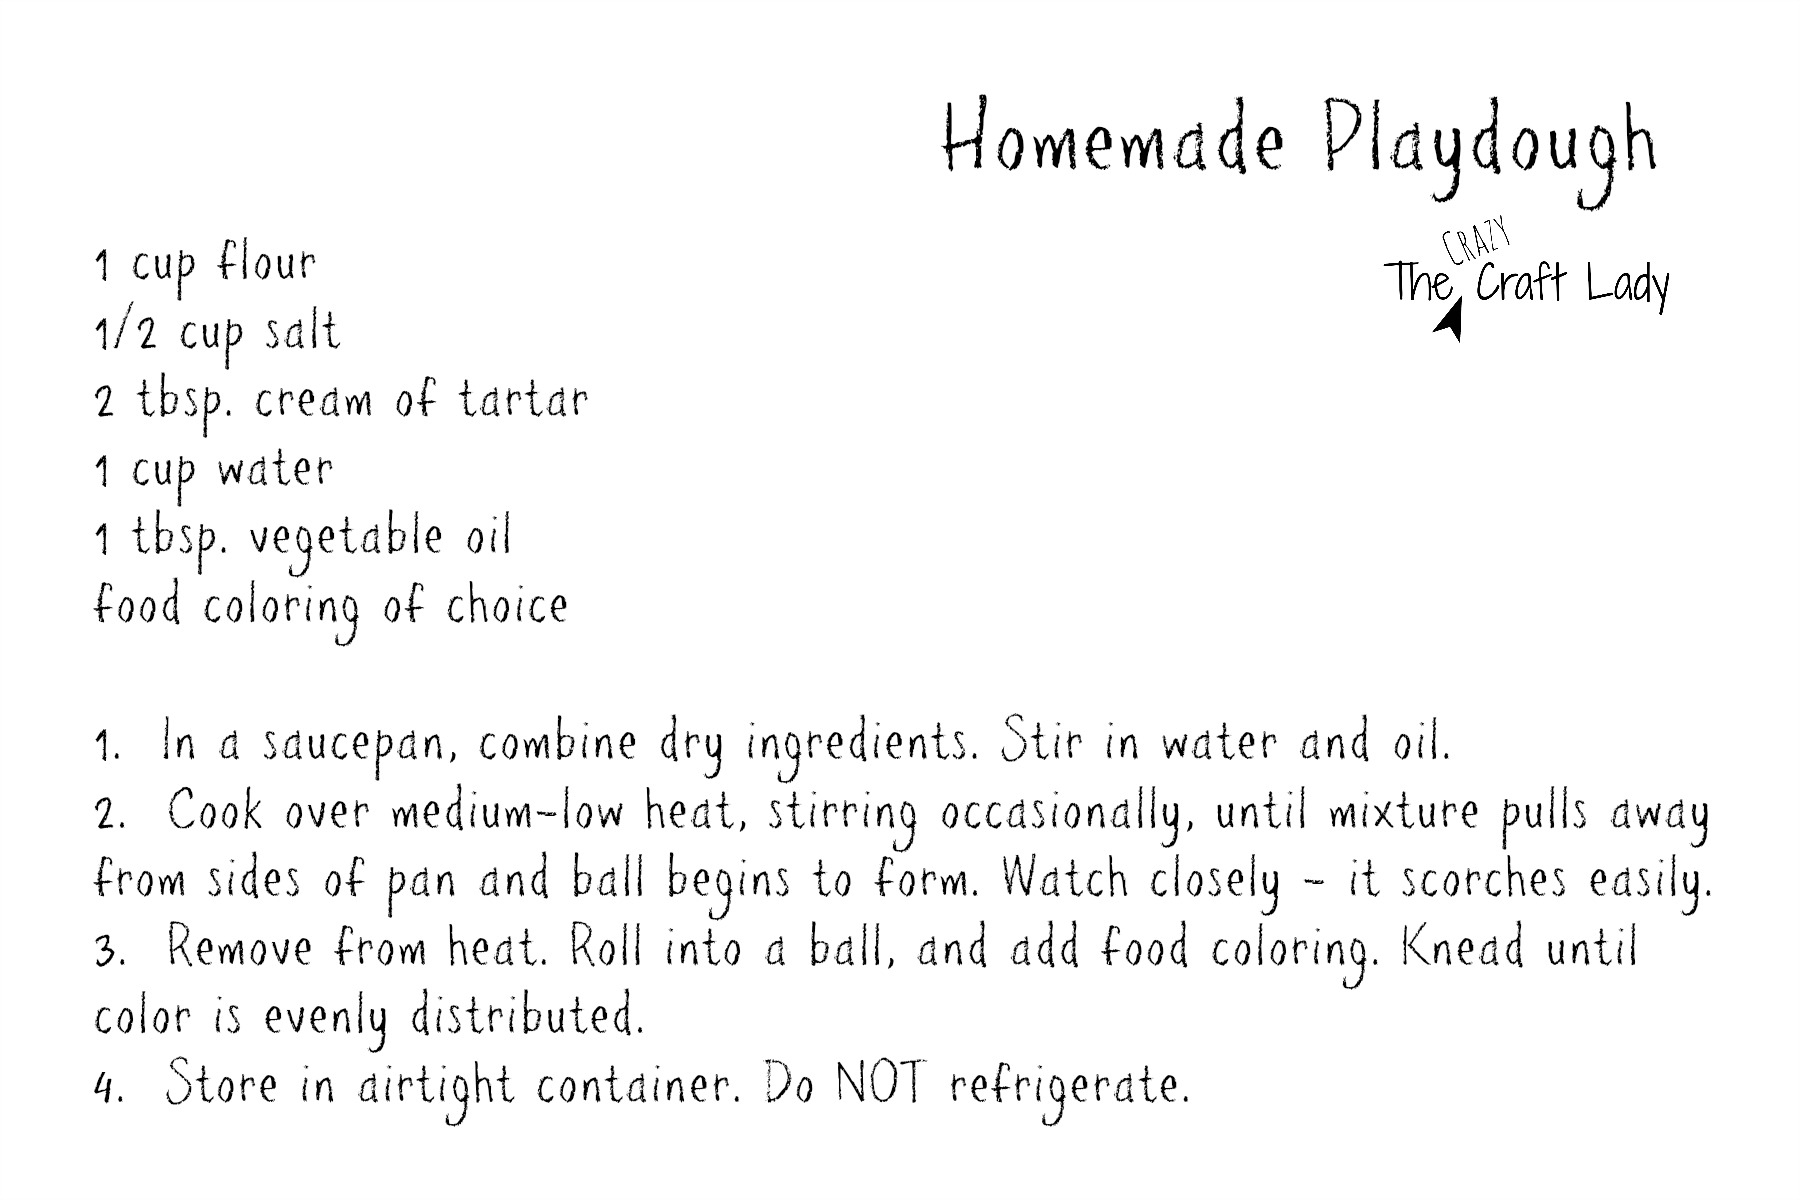 Homemade Playdough Printable Recipe Card